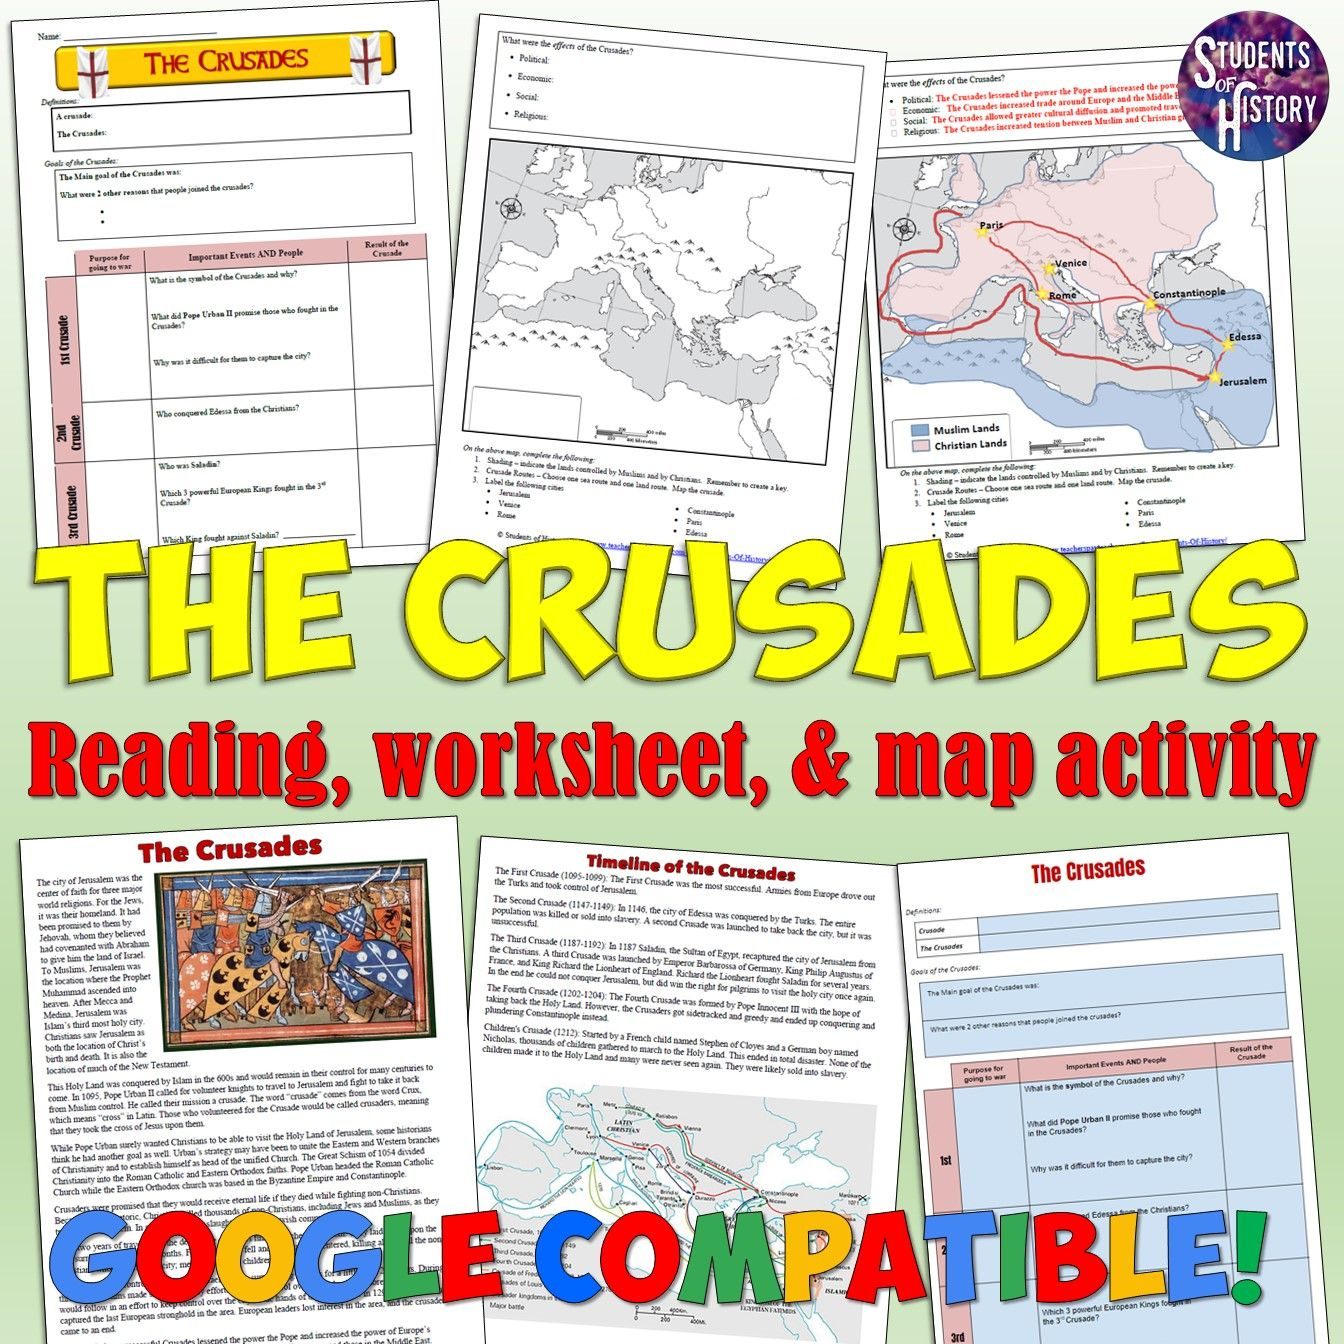 Crusades Worksheet And Map Activity